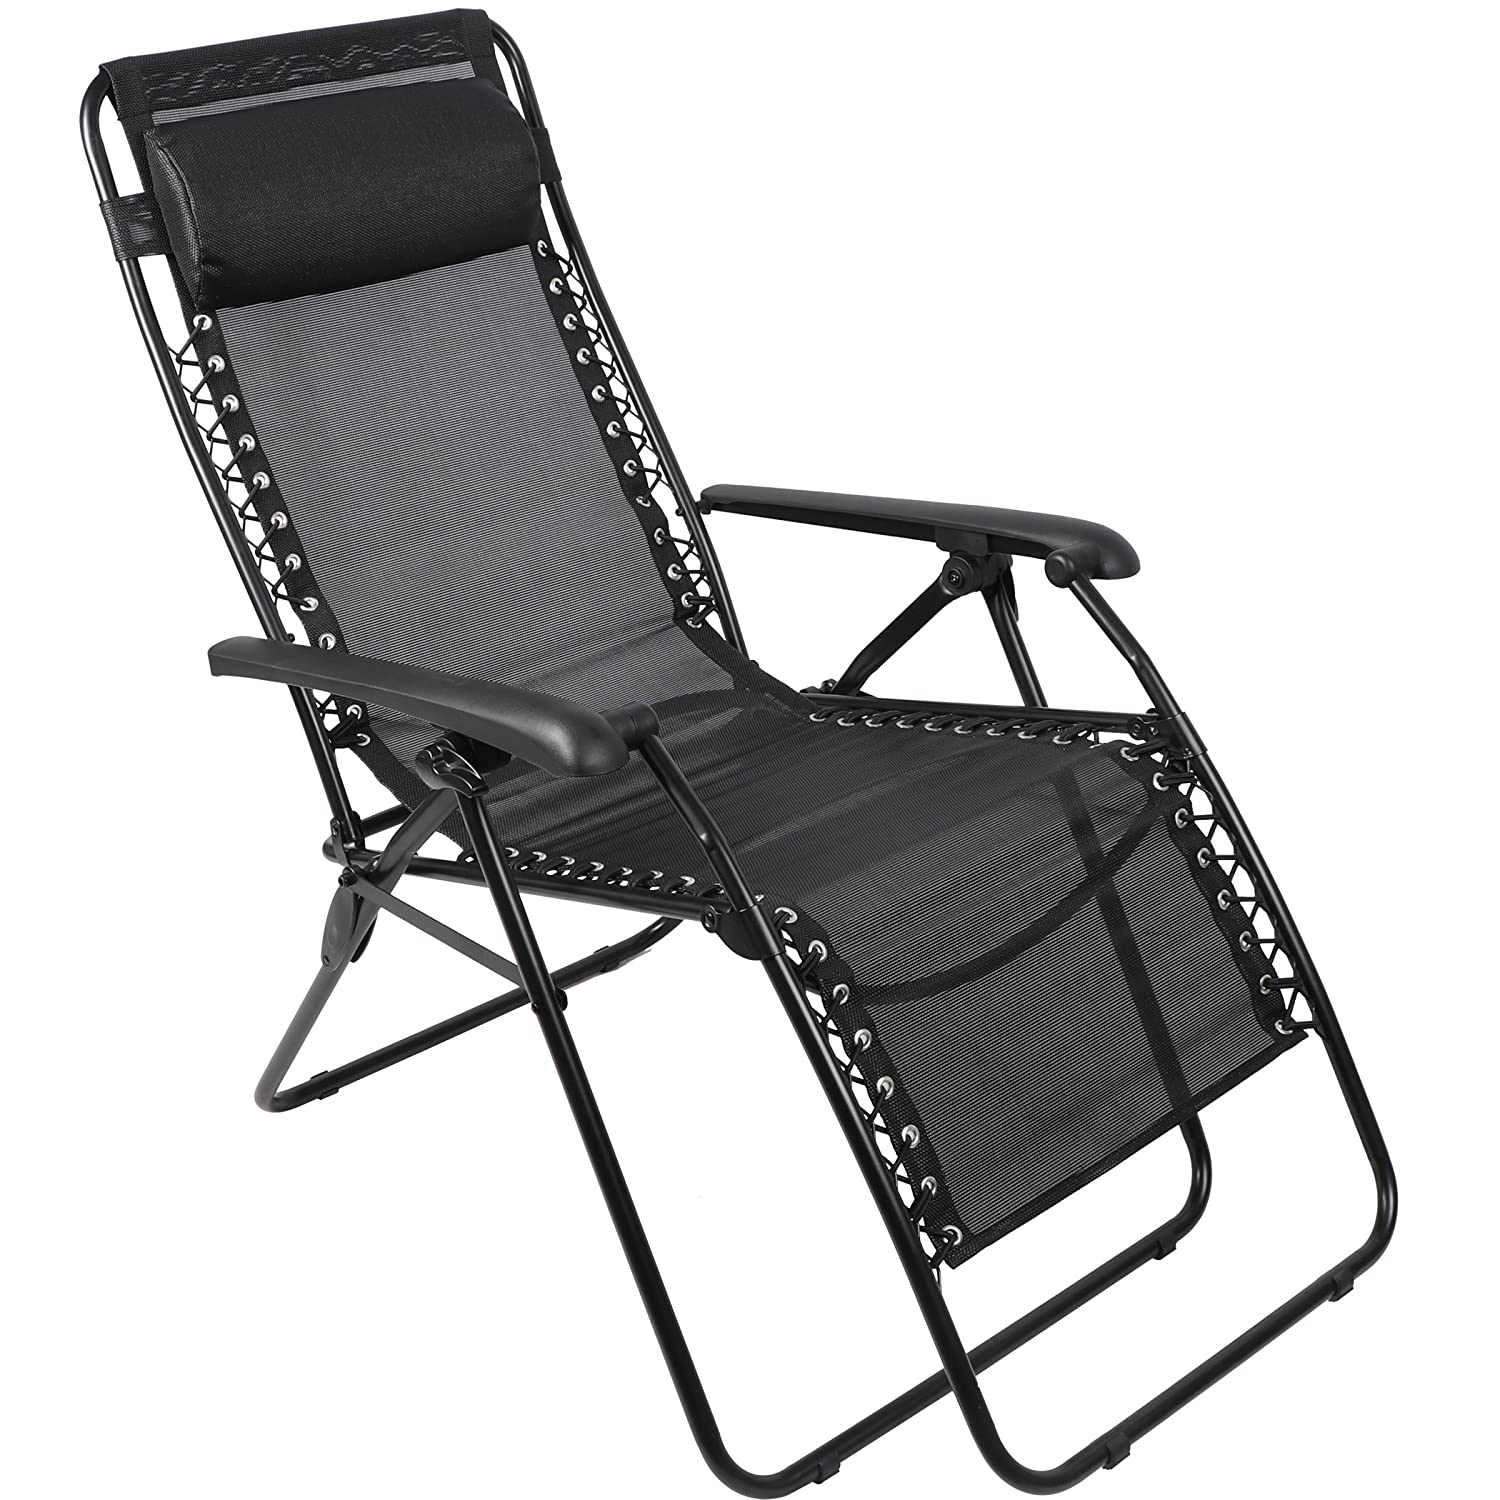 Merveilleux Amazon.com: PORTAL Zero Gravity Chair Patio Lawn Reclining Lounge Chair,  Black: Sports U0026 Outdoors